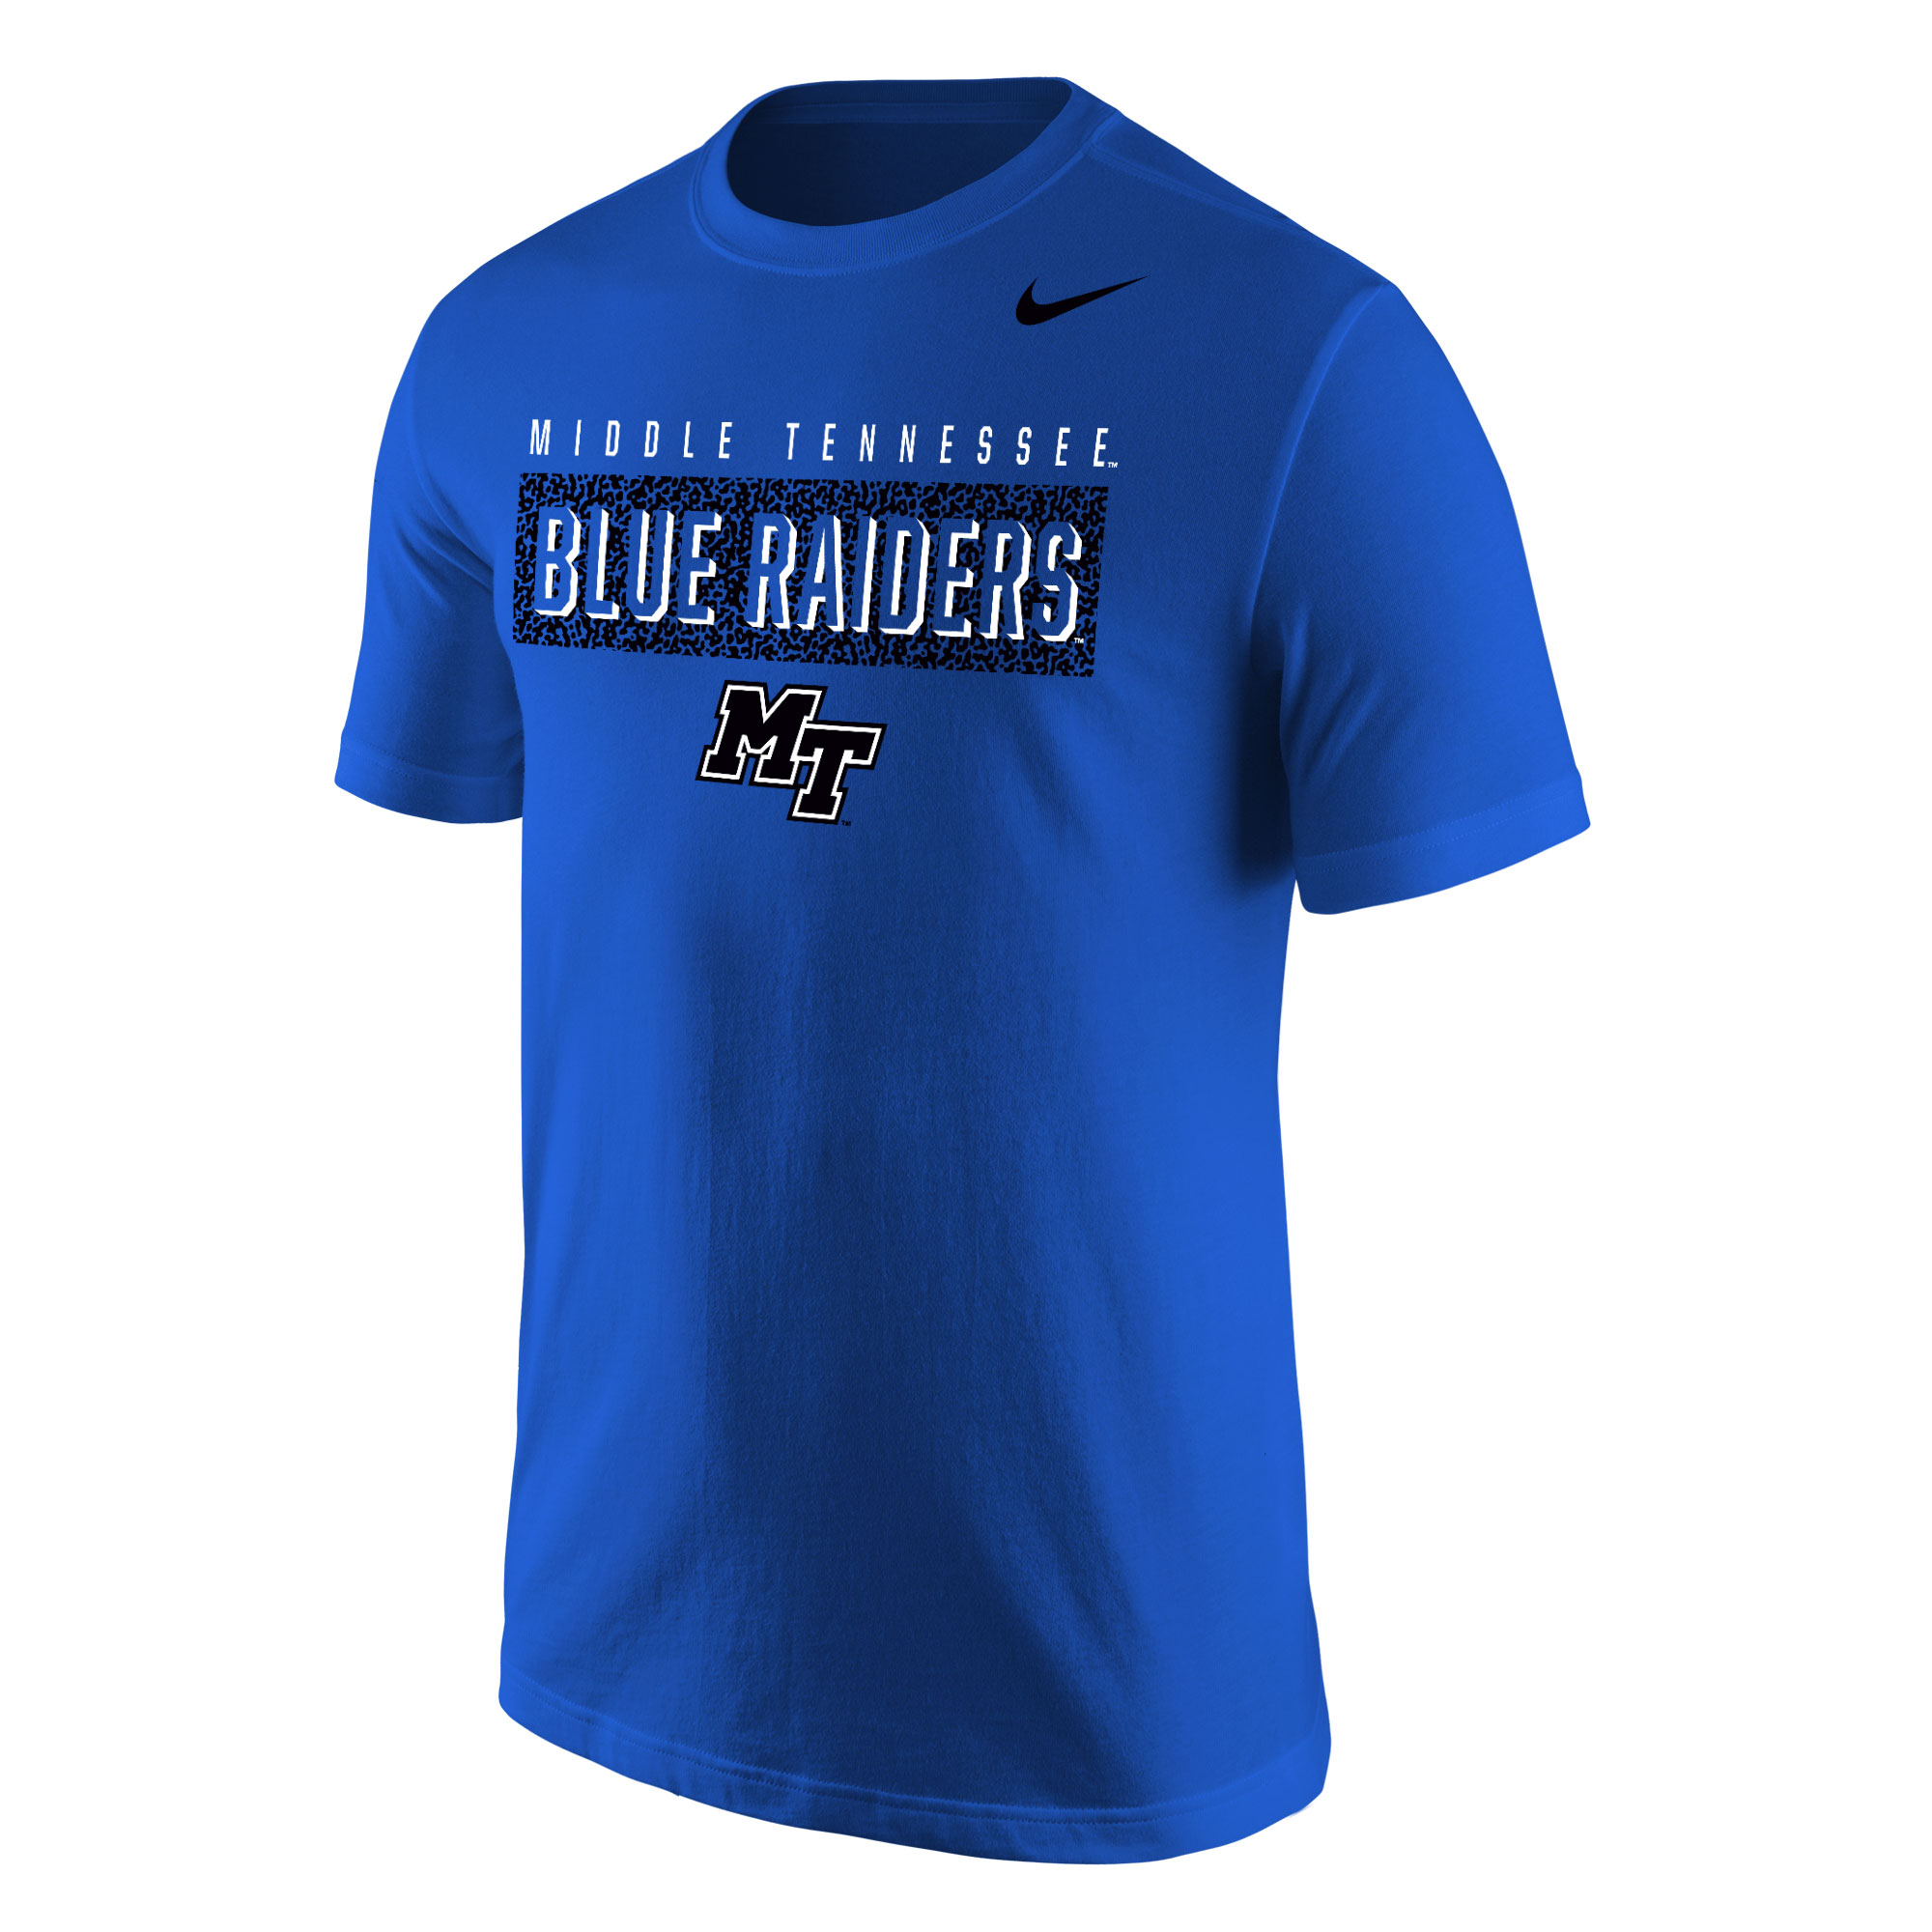 Middle Tennessee Blue Raiders w/ MT Logo Nike® Core Shirt